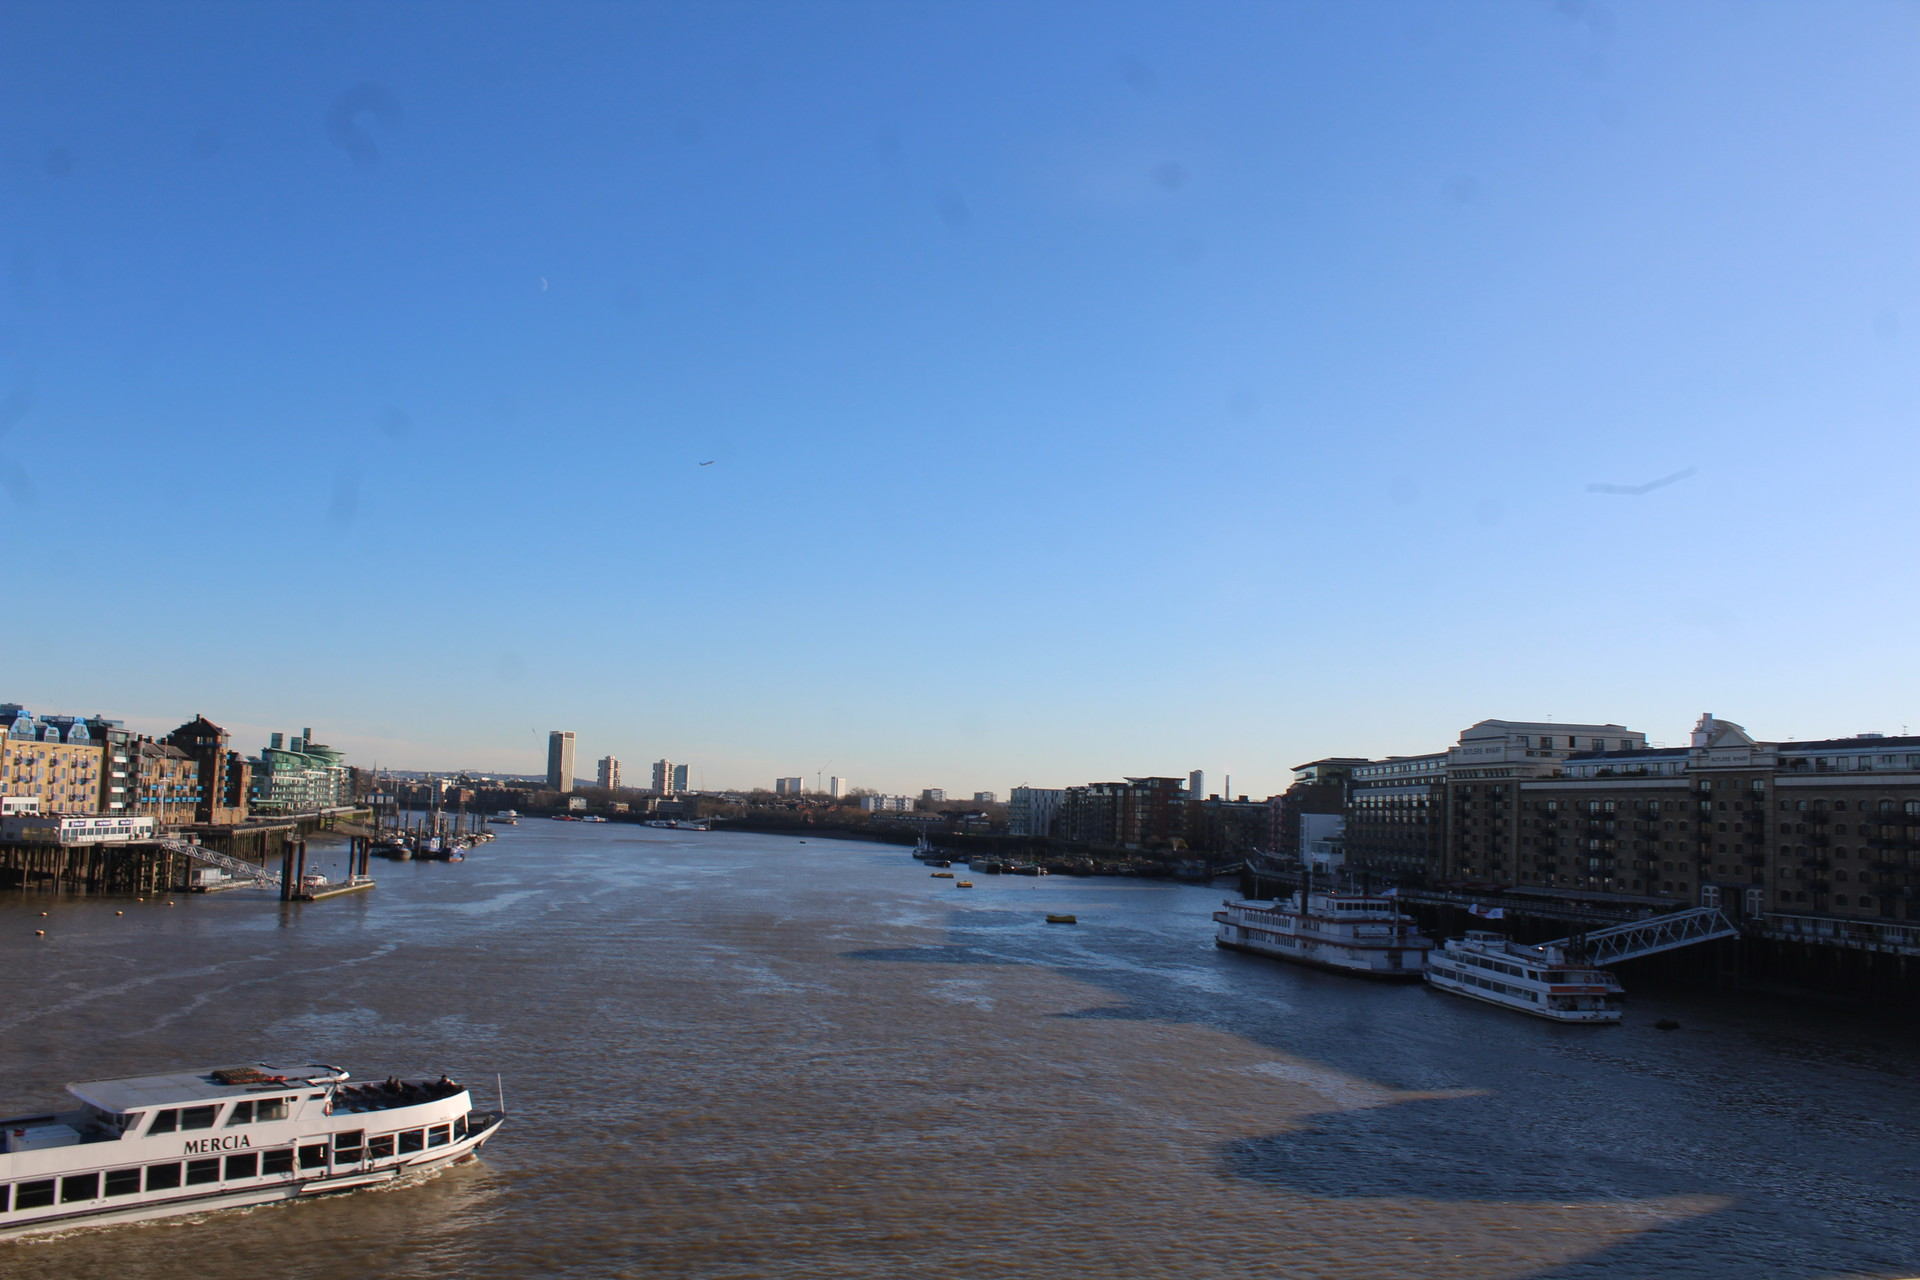 The best views of London from Tower Bridge